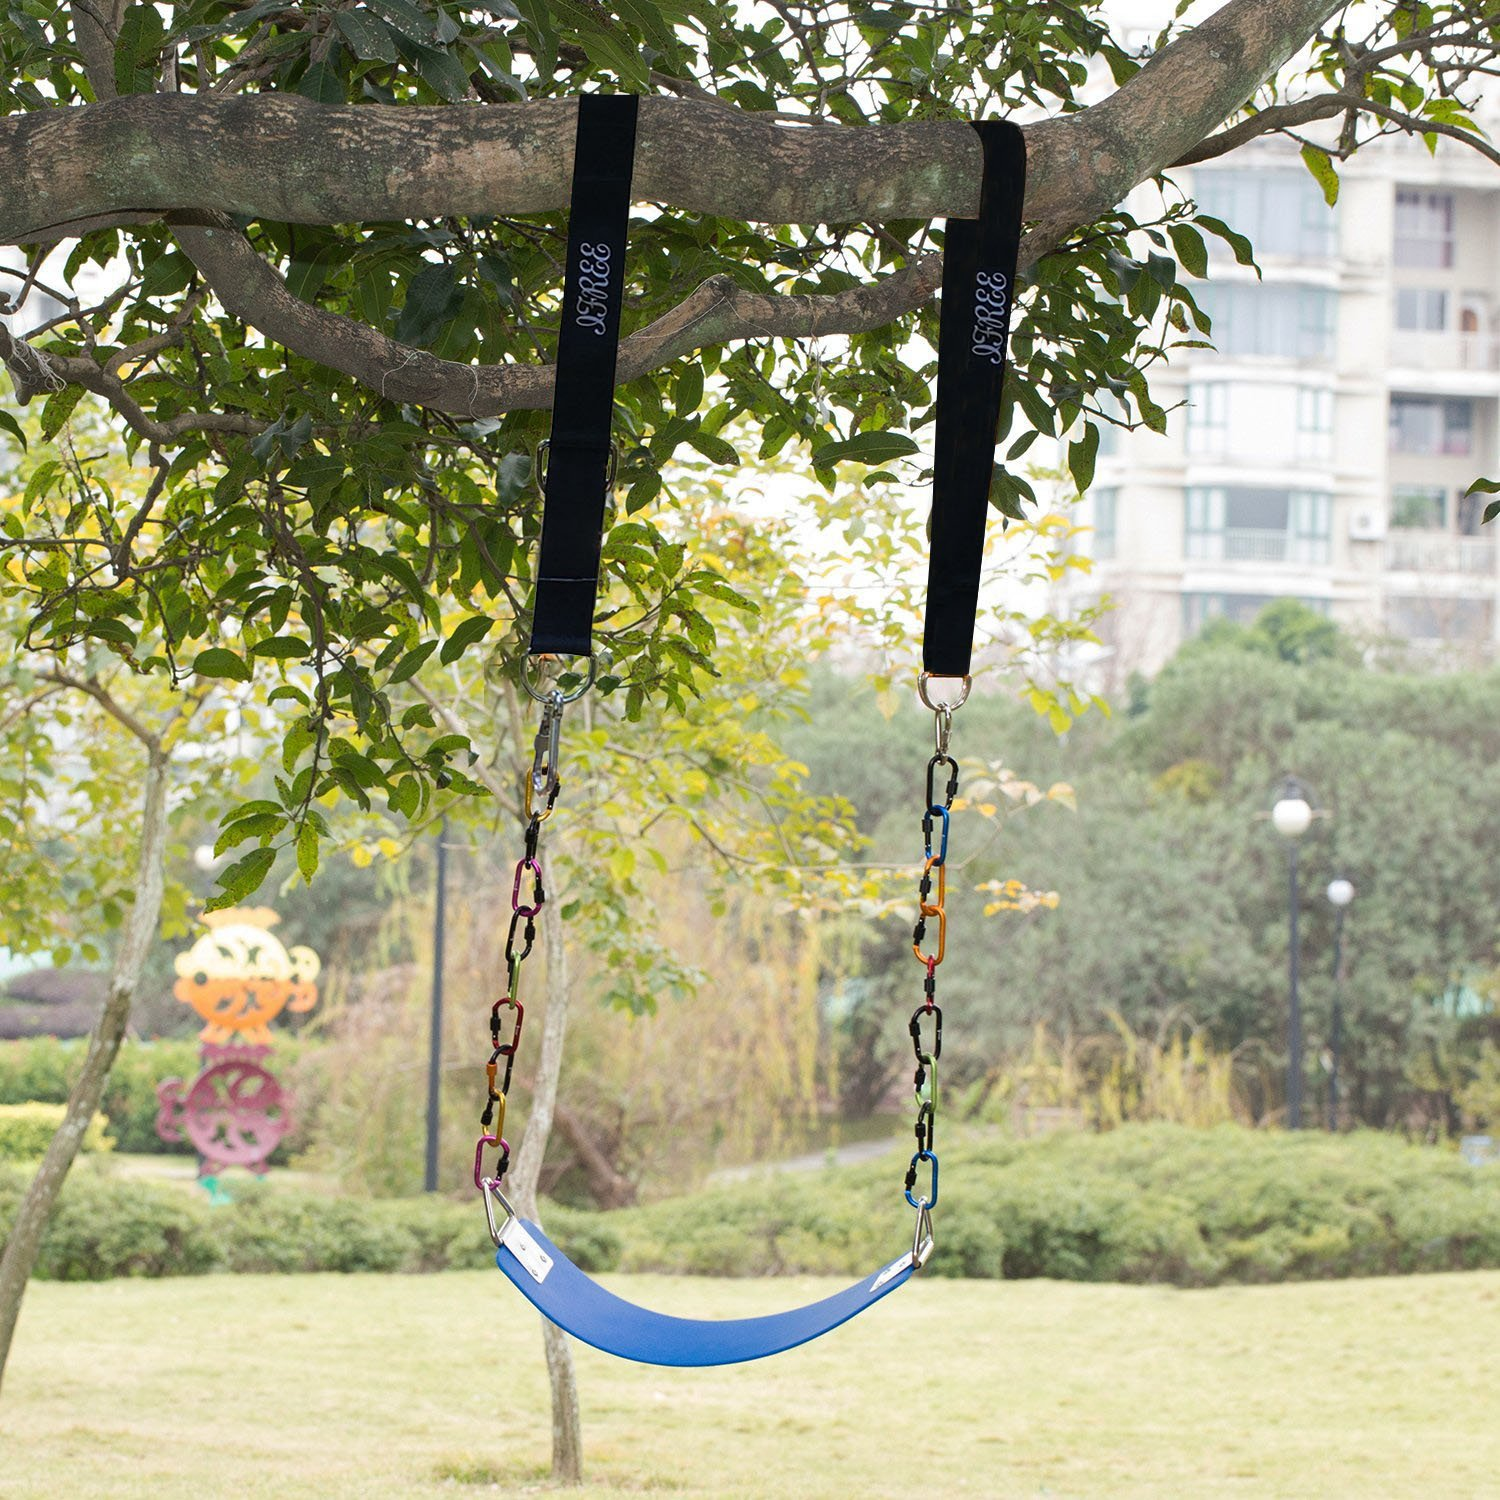 IFREE Tree Swing Straps Set, Safety Swing Handing Rope, Easy & Fast Swing Hanger Installation to Tree, Holds up to 1760 Pounds Swing Tie With 2 Strap & Snap Stainless Steel Carabiner Hooks- Black by IFREE (Image #2)